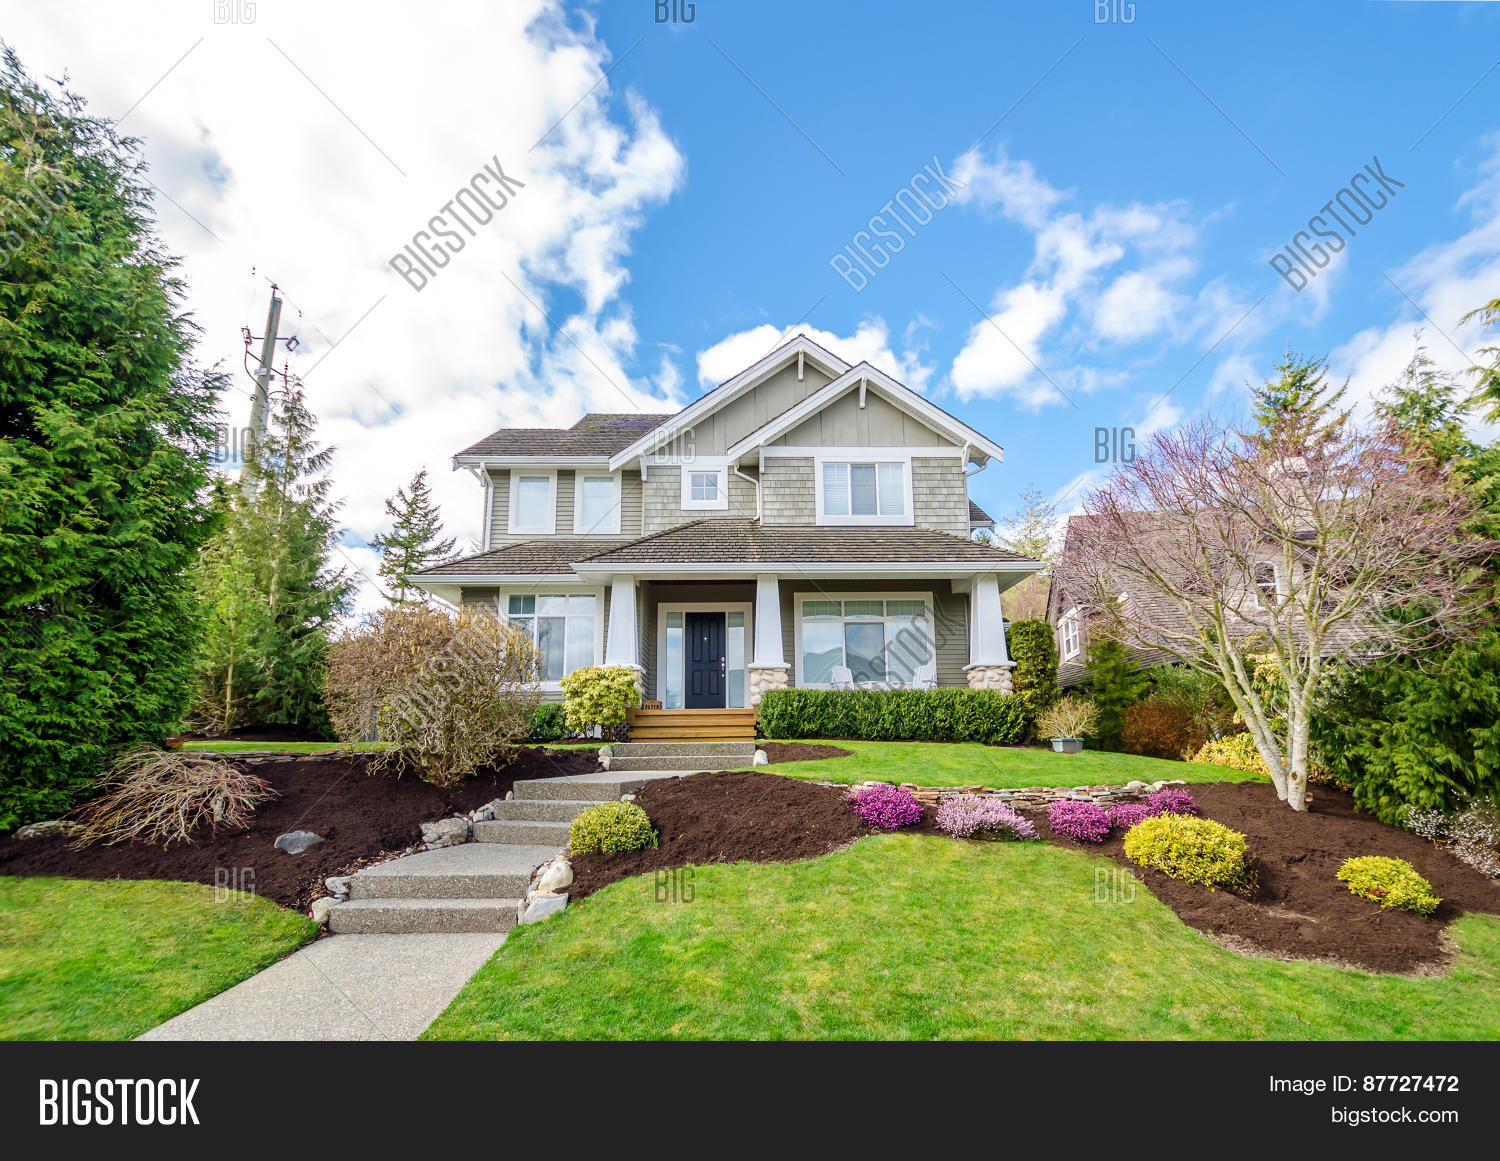 Luxury house beautiful landscaping image photo bigstock for Beautiful homes photo gallery